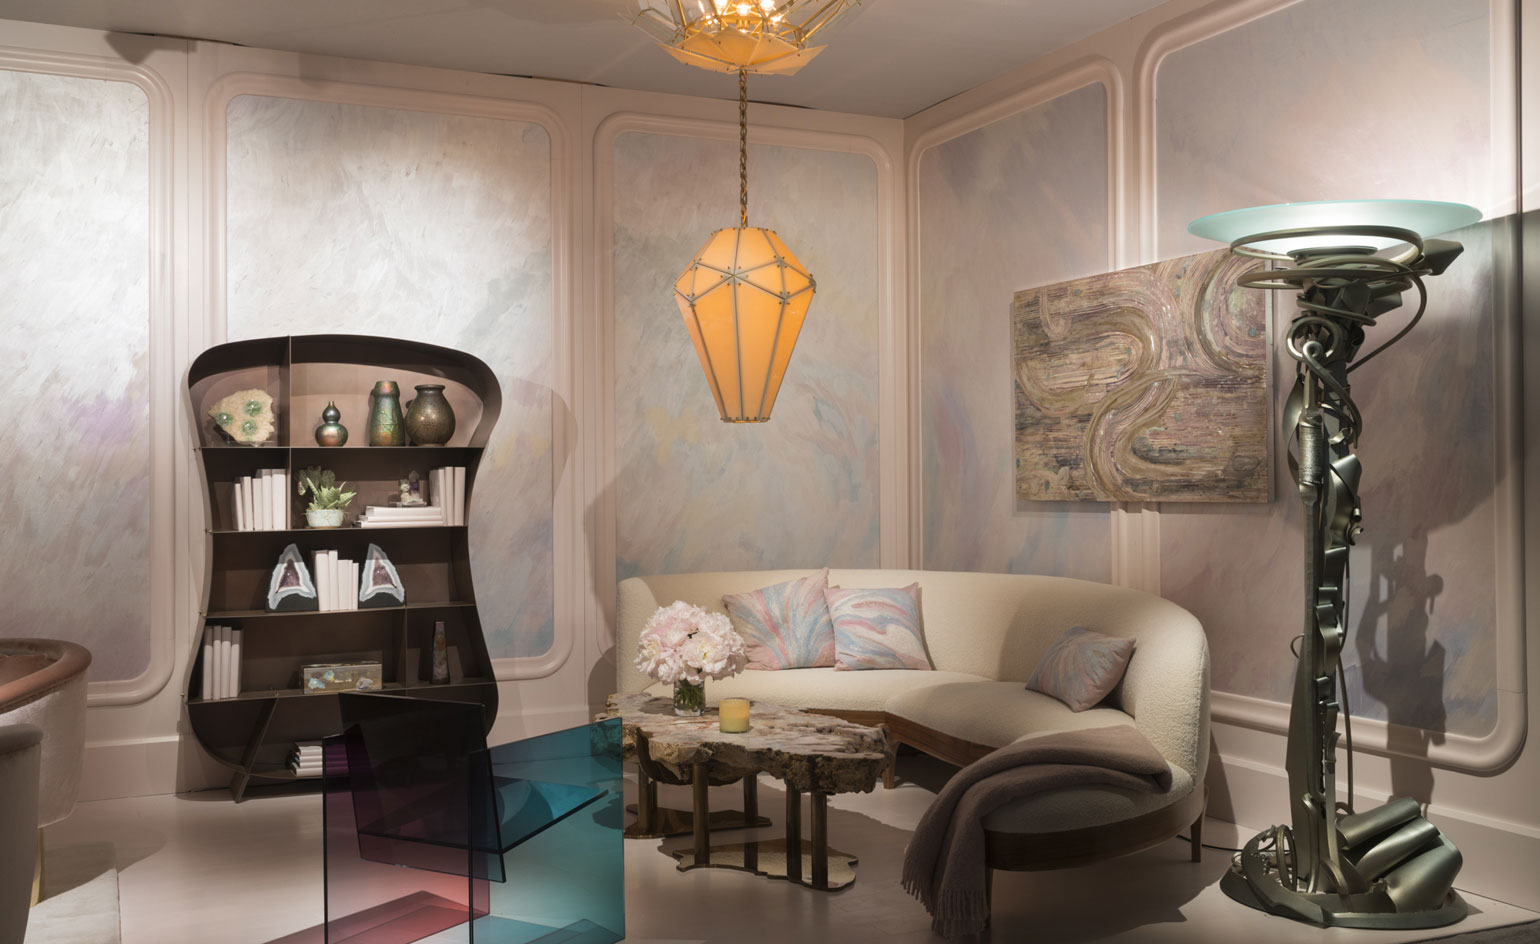 Get Ready for the Exceptional Salon Art + Design 2018 - The New Nouveau salon art + design Get Ready for the Exceptional Salon Art + Design NY 2018 atmosphere 0